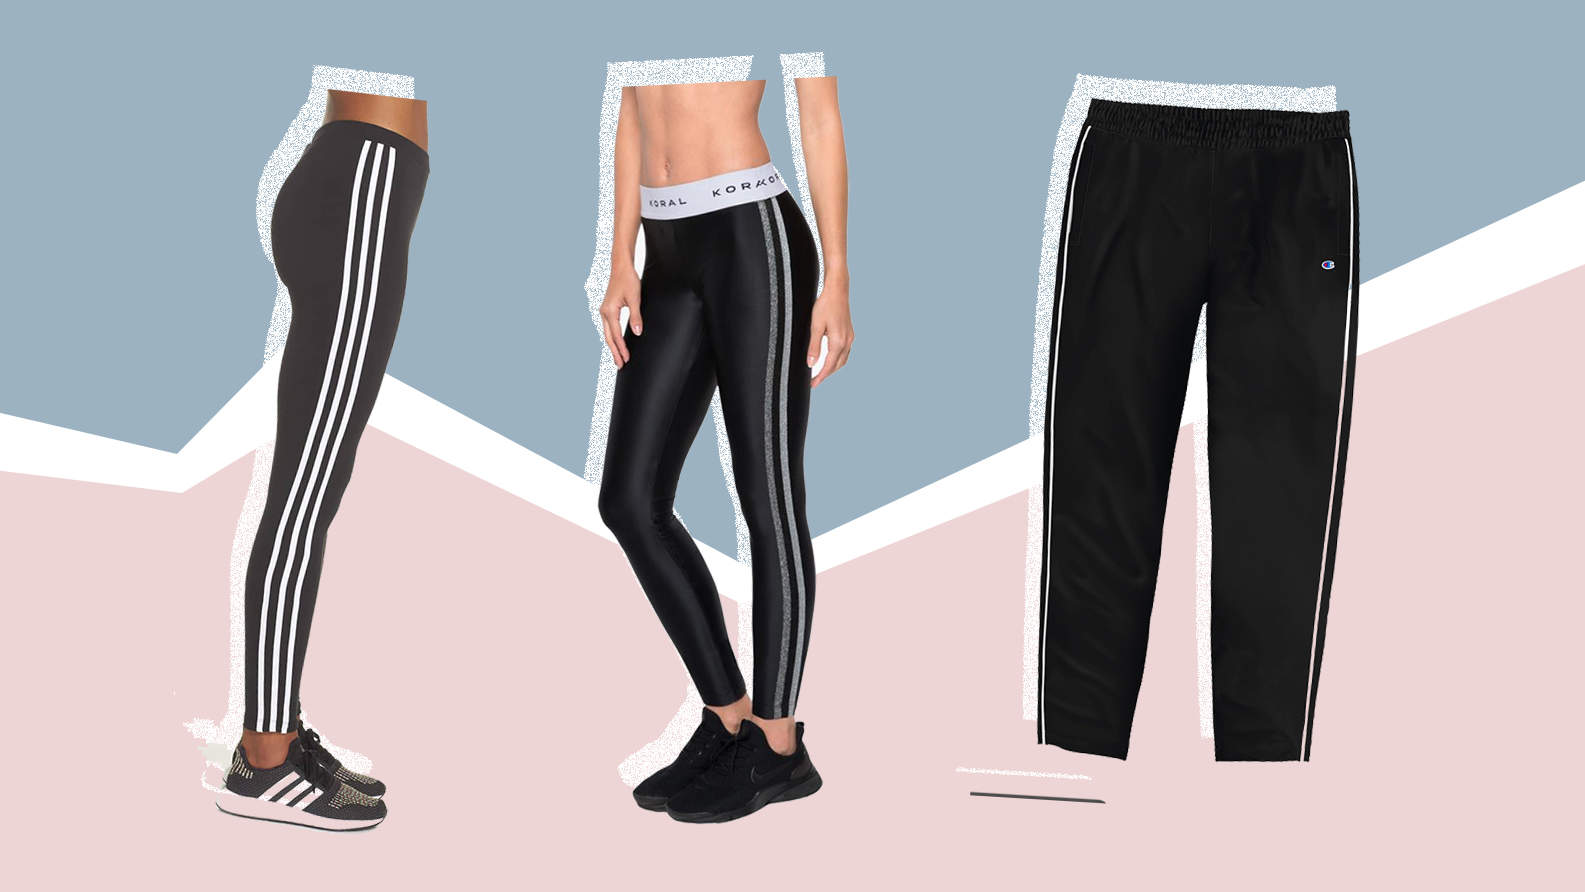 stripe-leggings-adidas-koral-champion